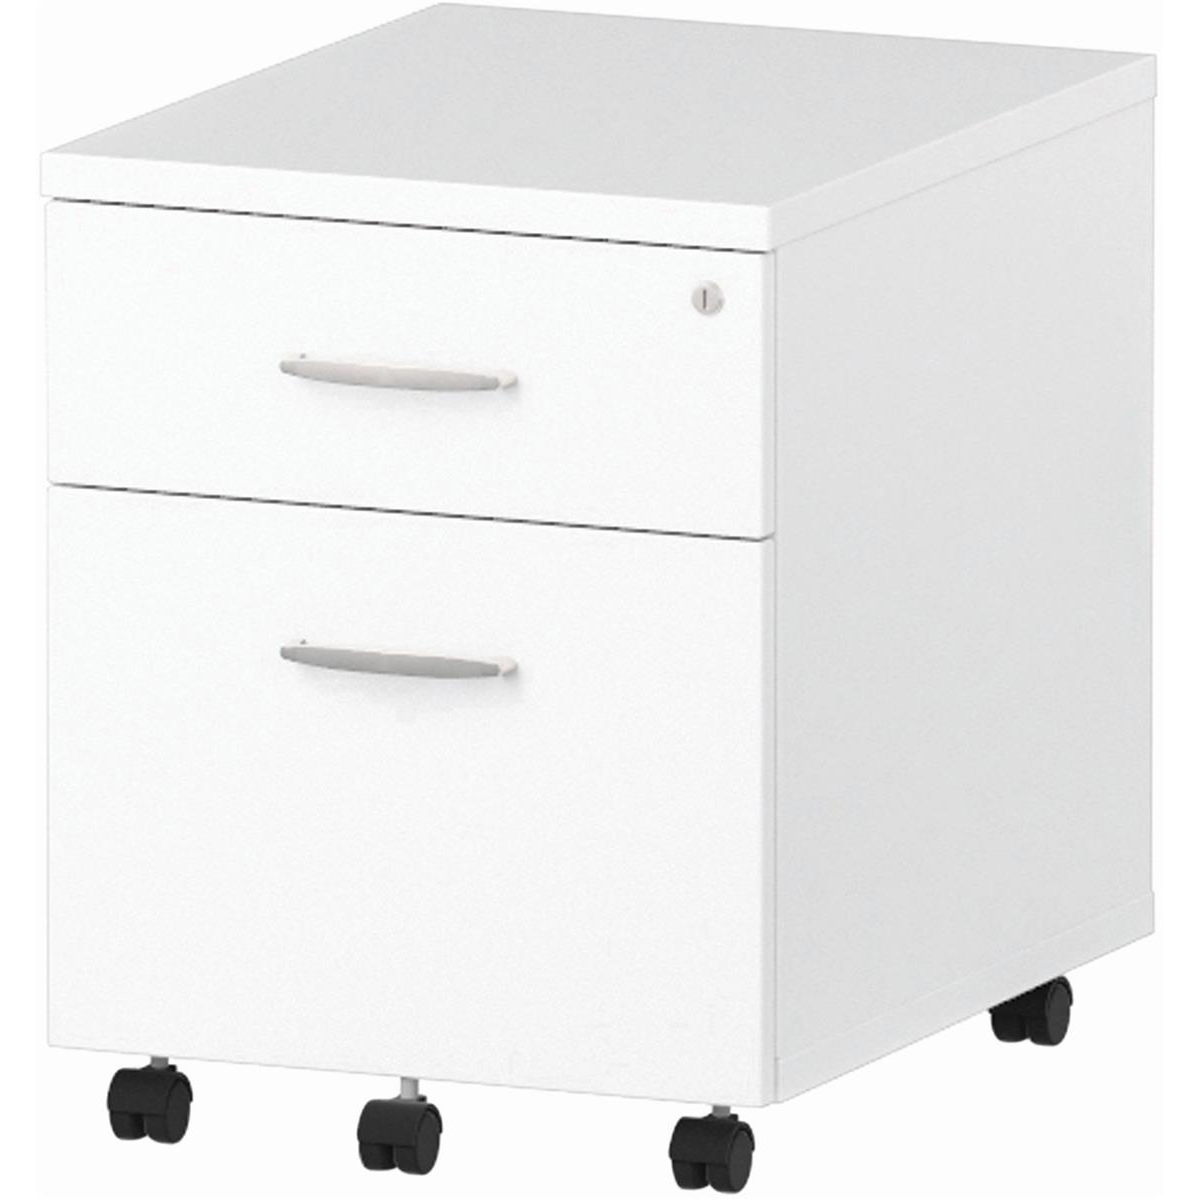 Trexus 2 Drawer Mobile Pedestal 430x500x510mm White Ref I000184